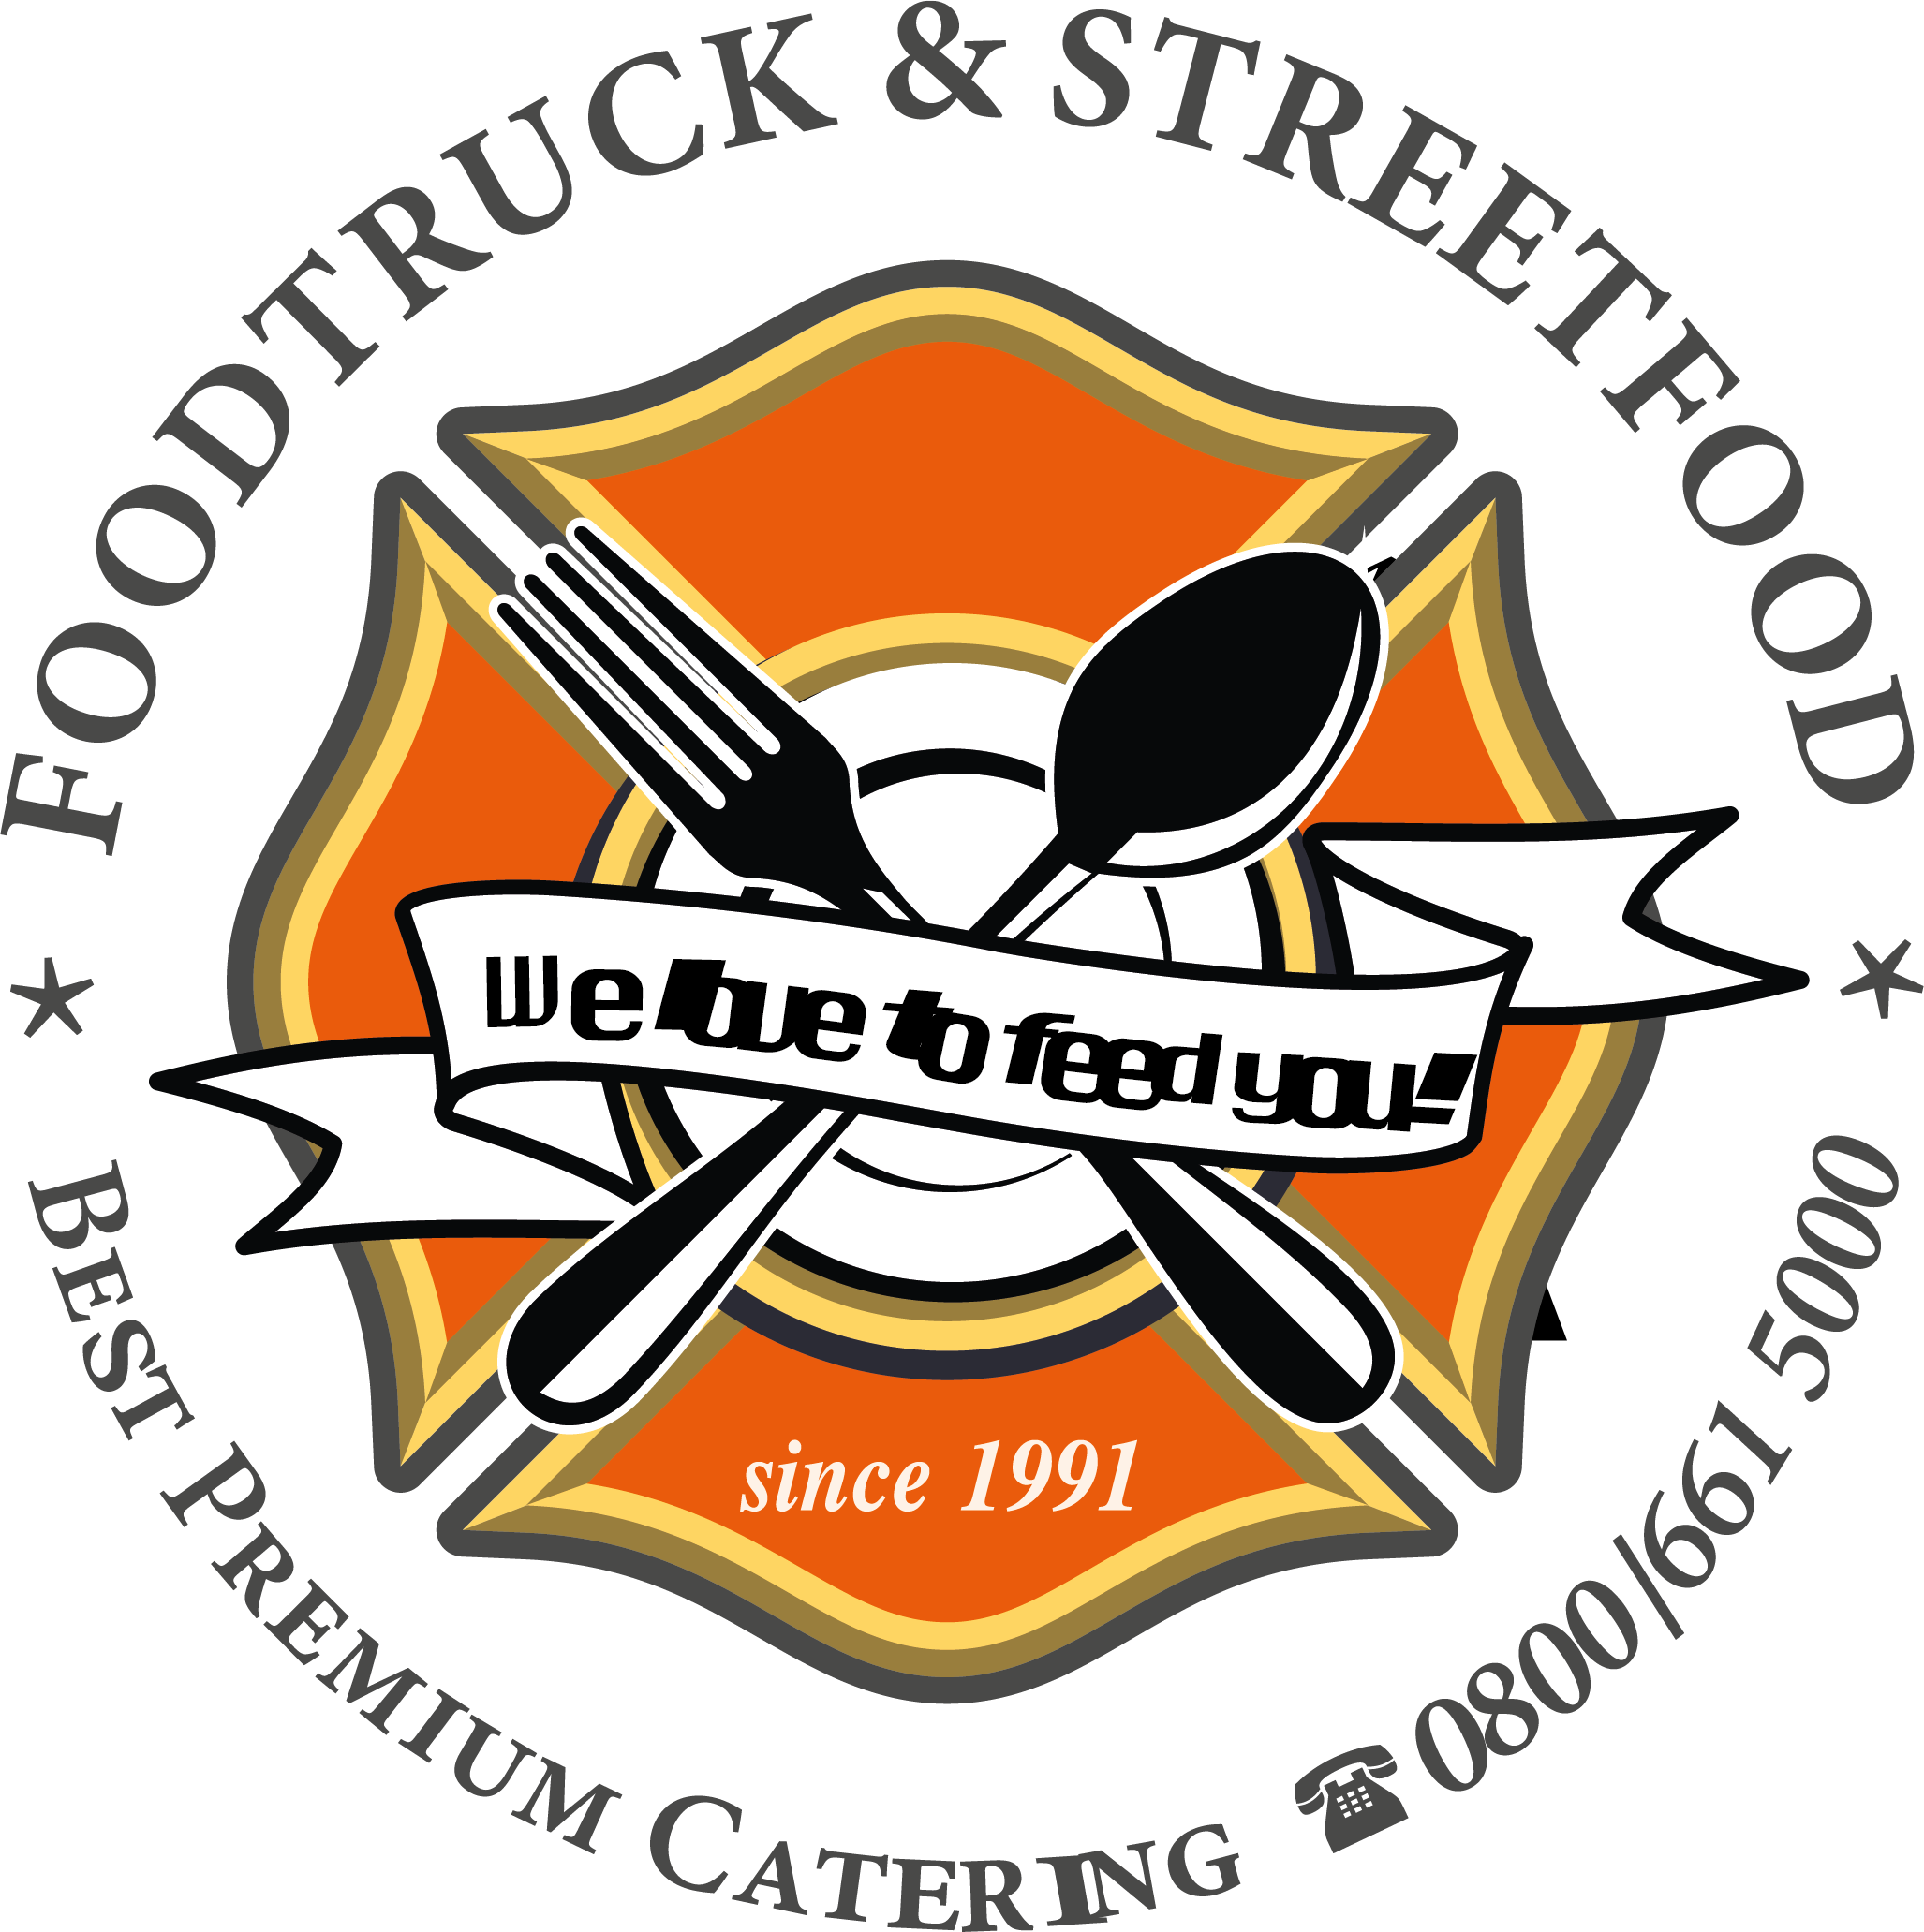 foodtruck catering